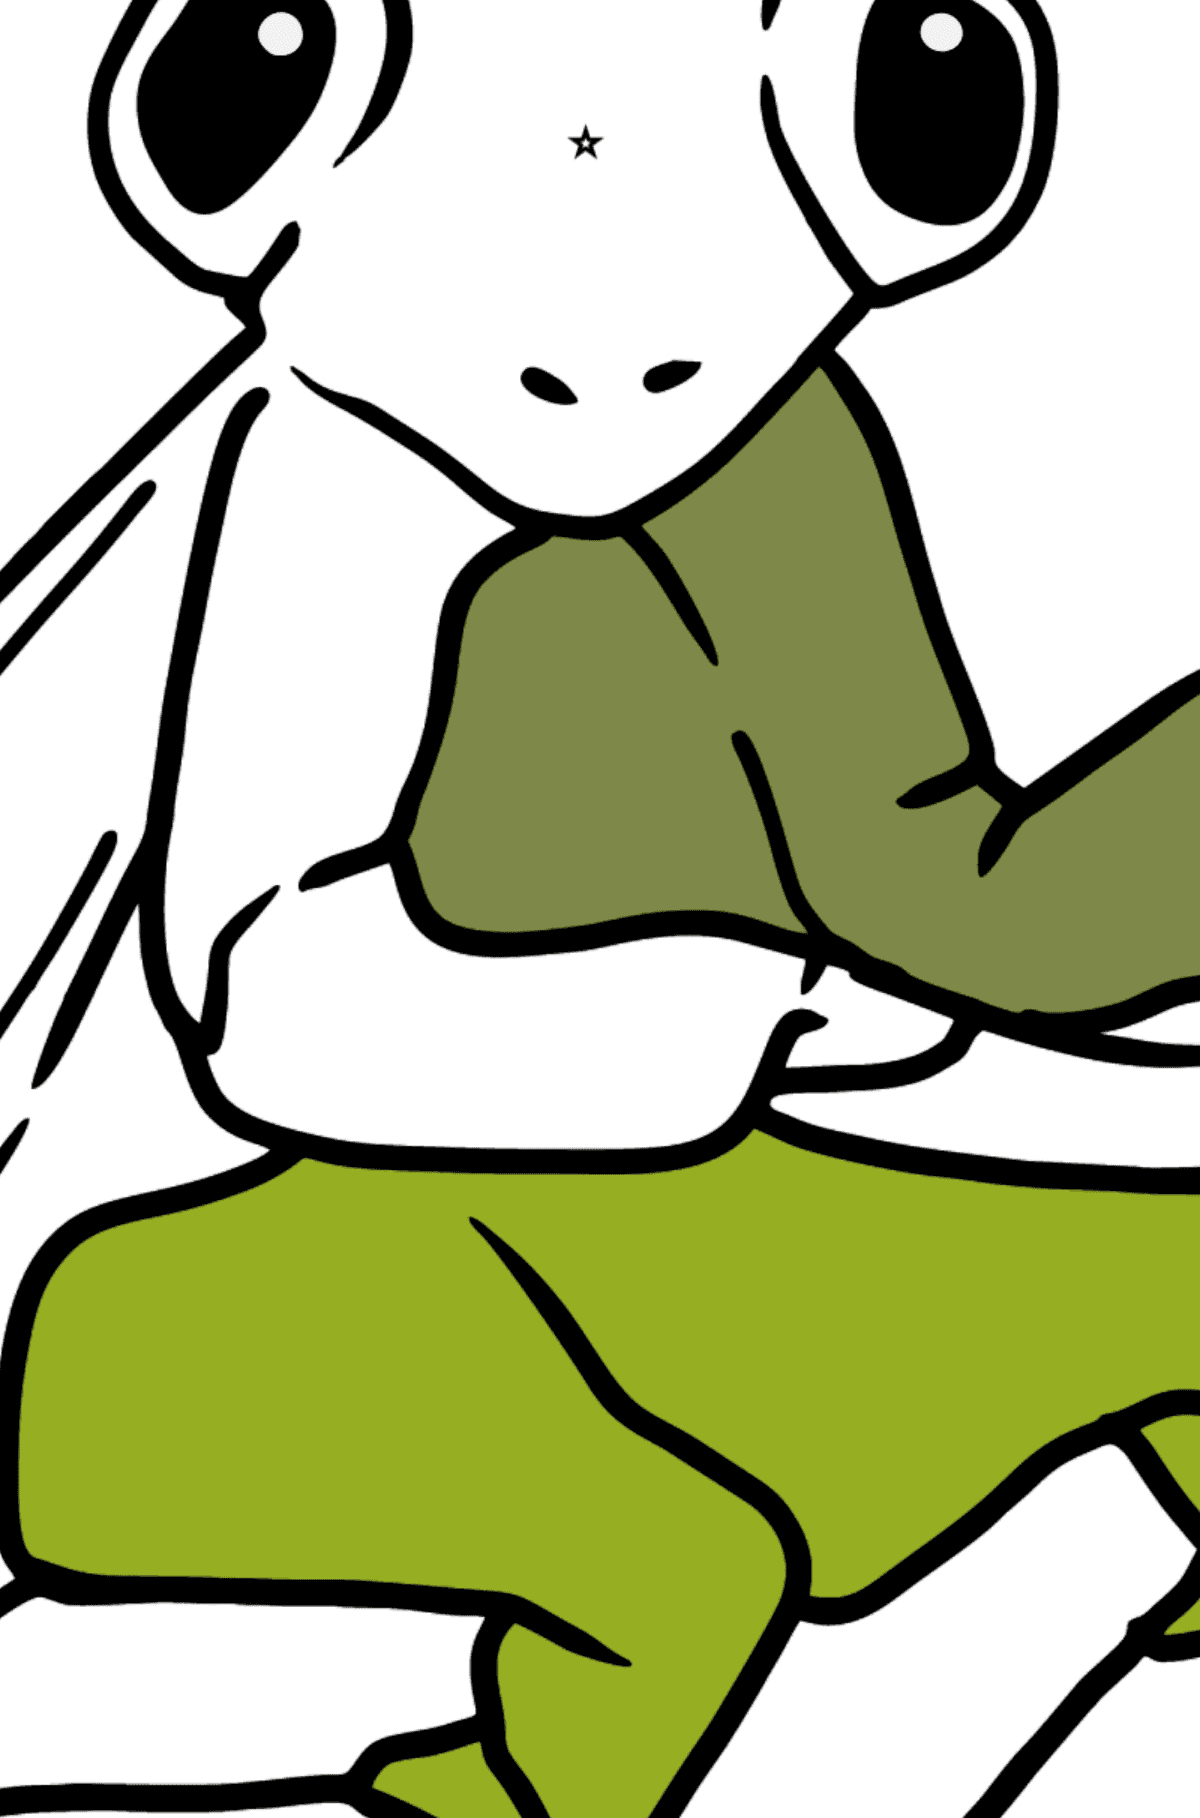 Mantis coloring page - Coloring by Geometric Shapes for Kids